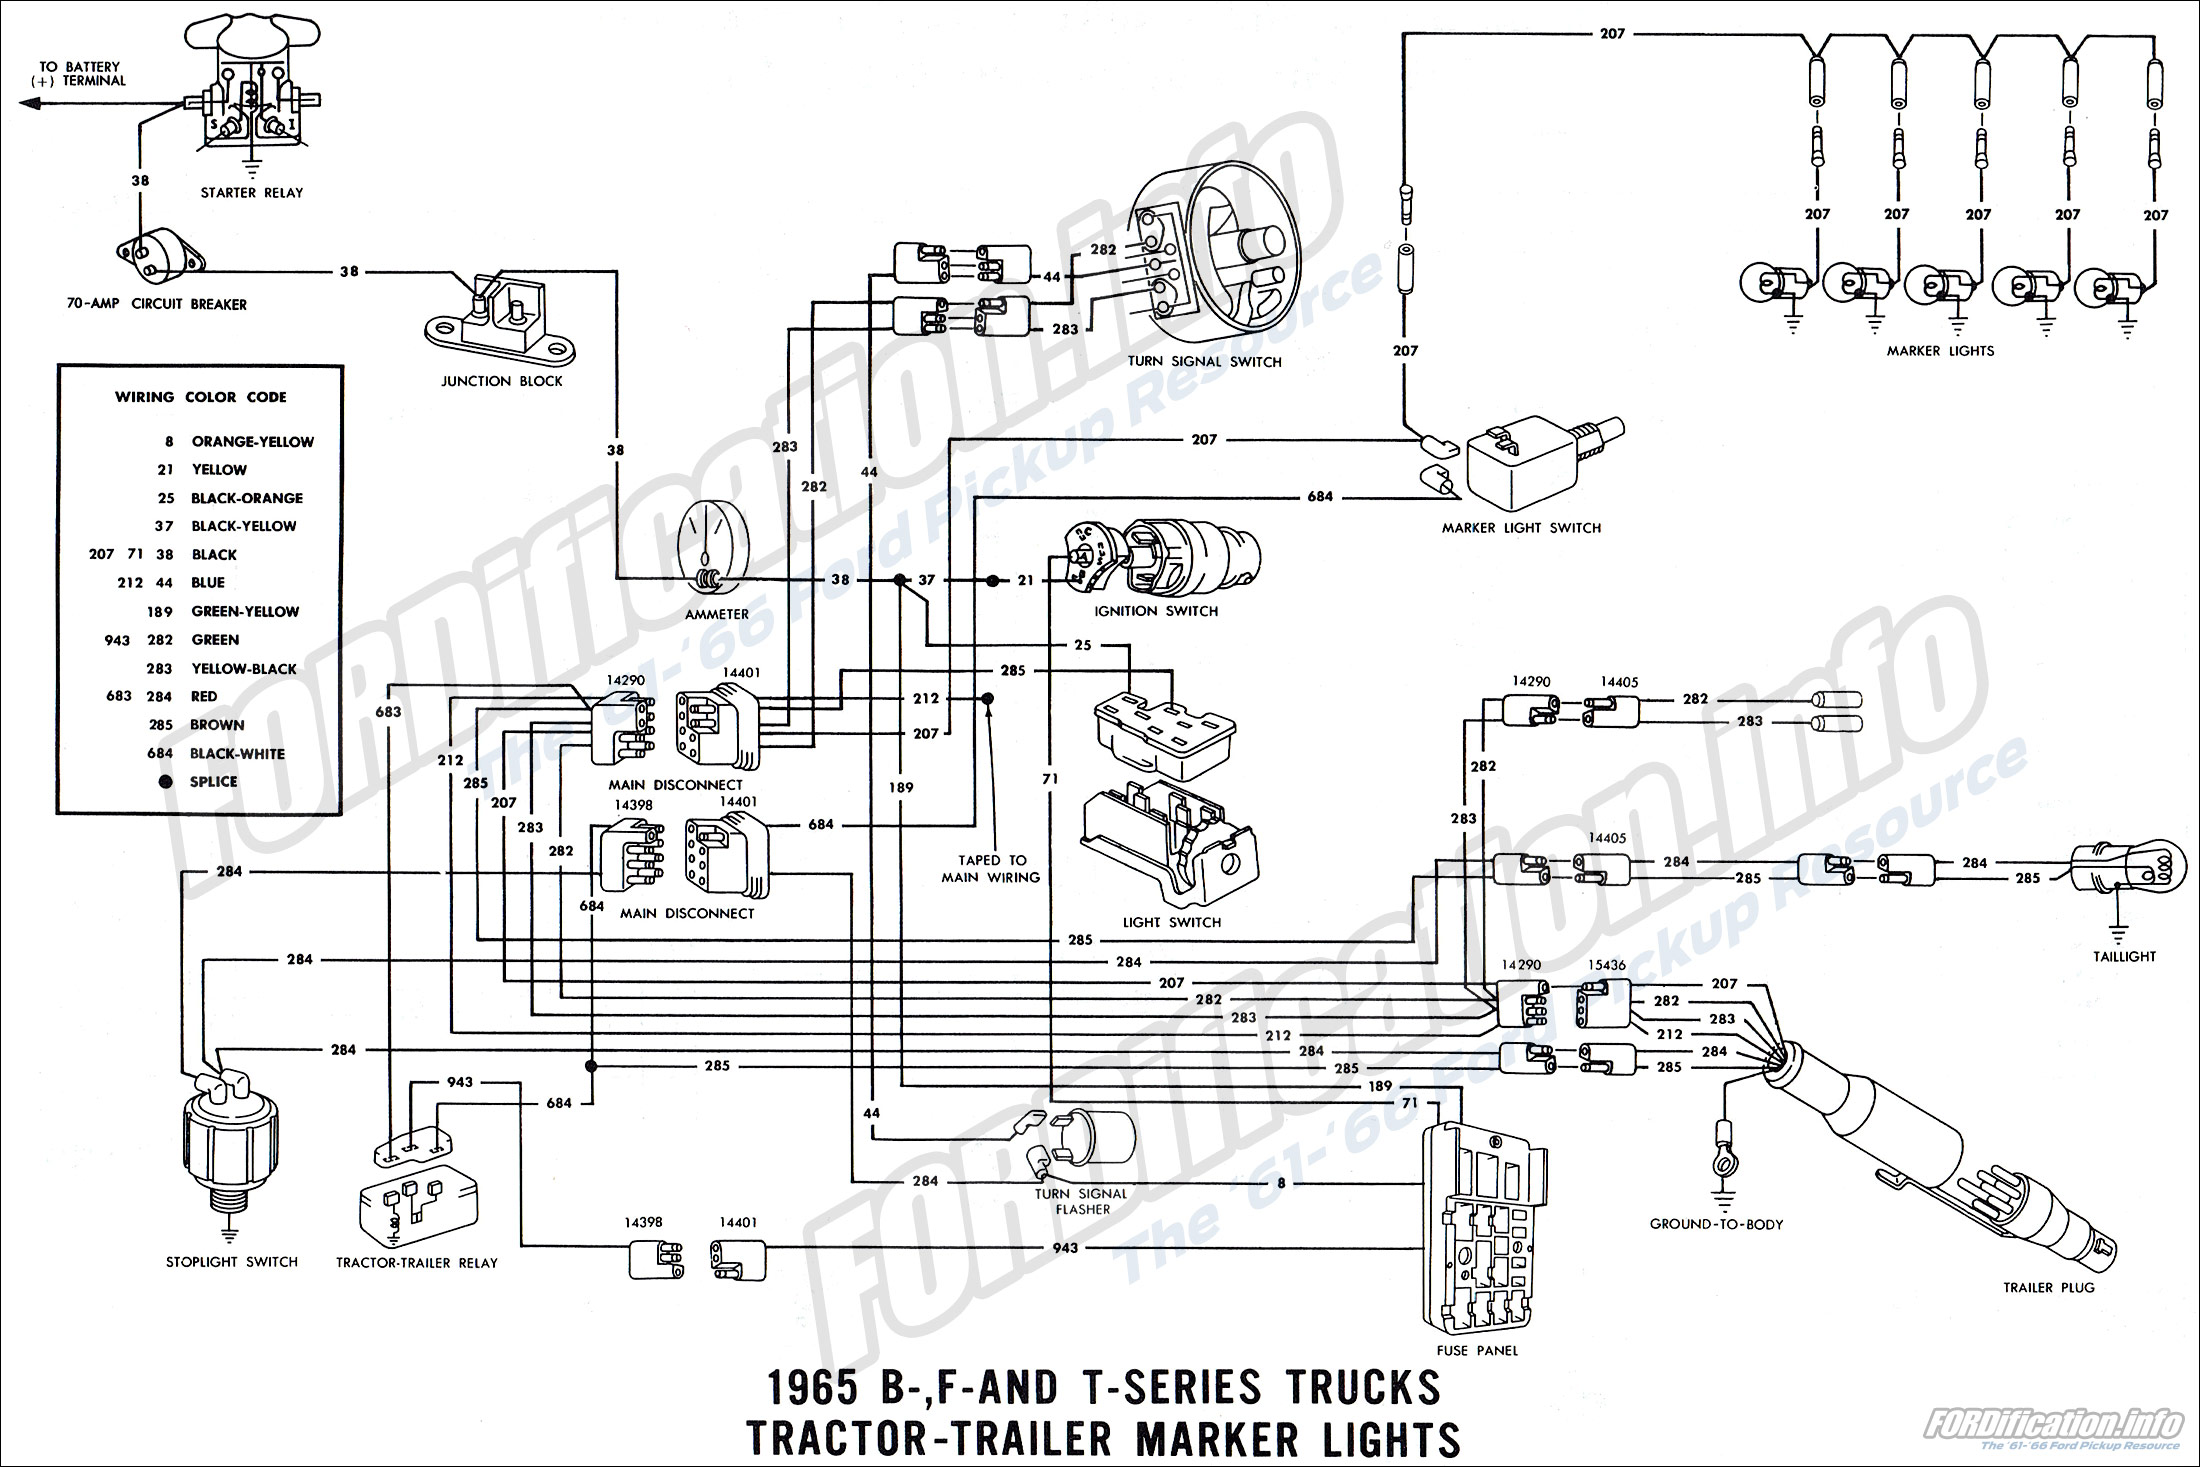 Vw Voltage Regulator Wiring Diagram Honda 650 Rincon